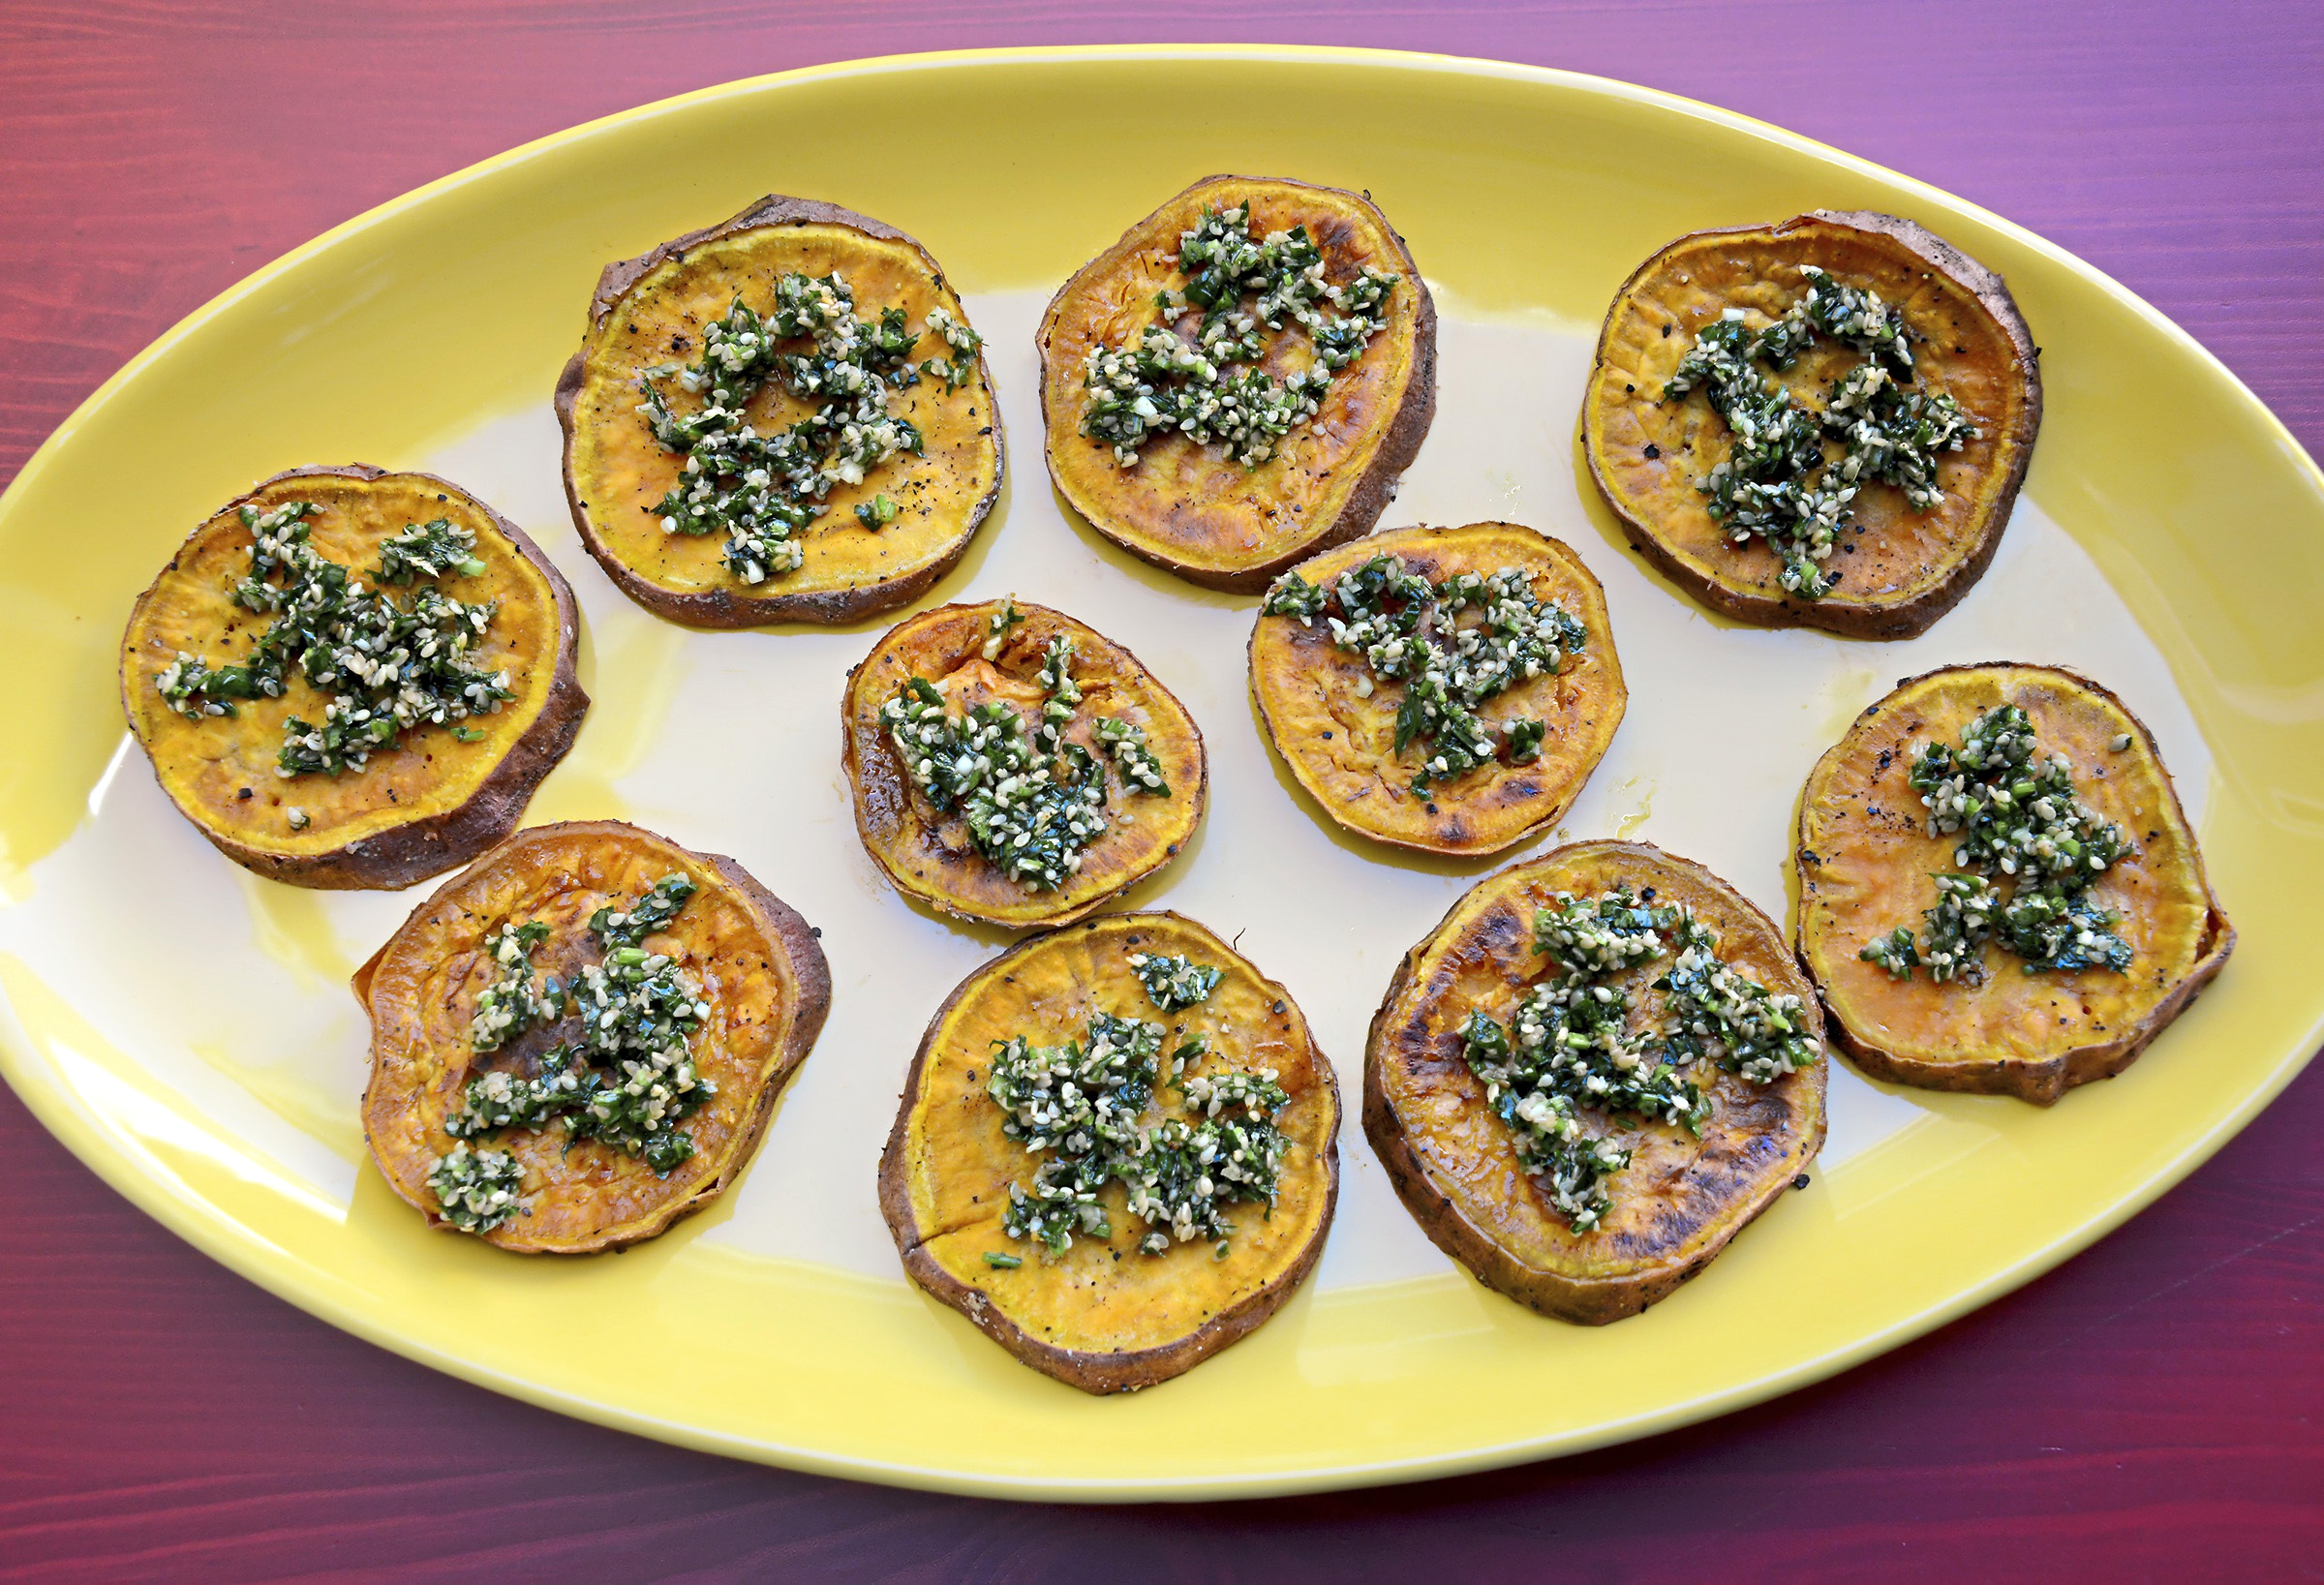 20171109lf-Thanksgiving01 Sweet potatoes are roasted and dressed with an herby hazelnut gremolata.